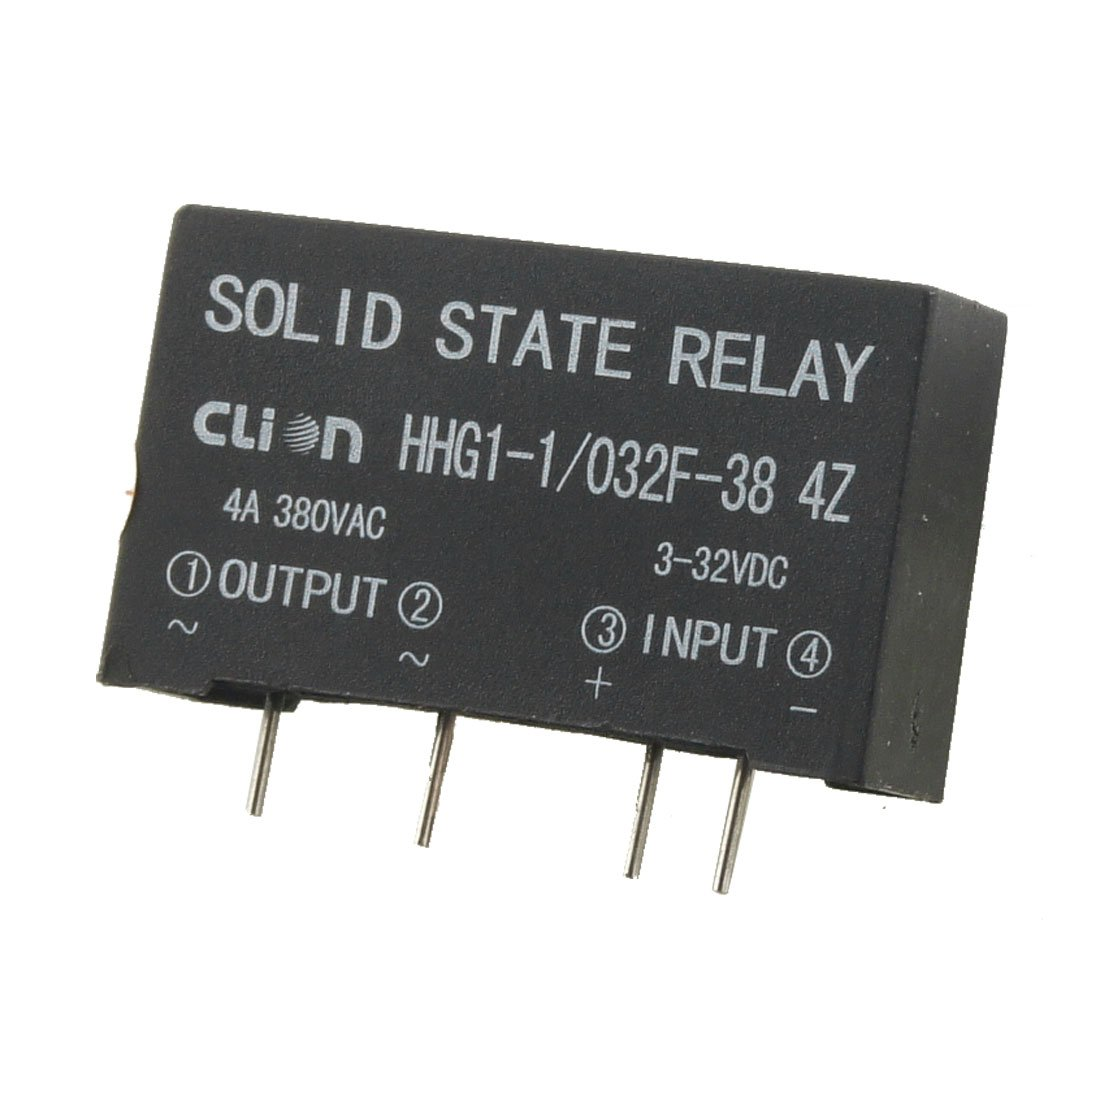 Sourcingmap Hhg1 1 032f 38 4z In 3 32v Dc Out 380v Ac 4a Pcb Solid State Relay Need Diode Diy Tools